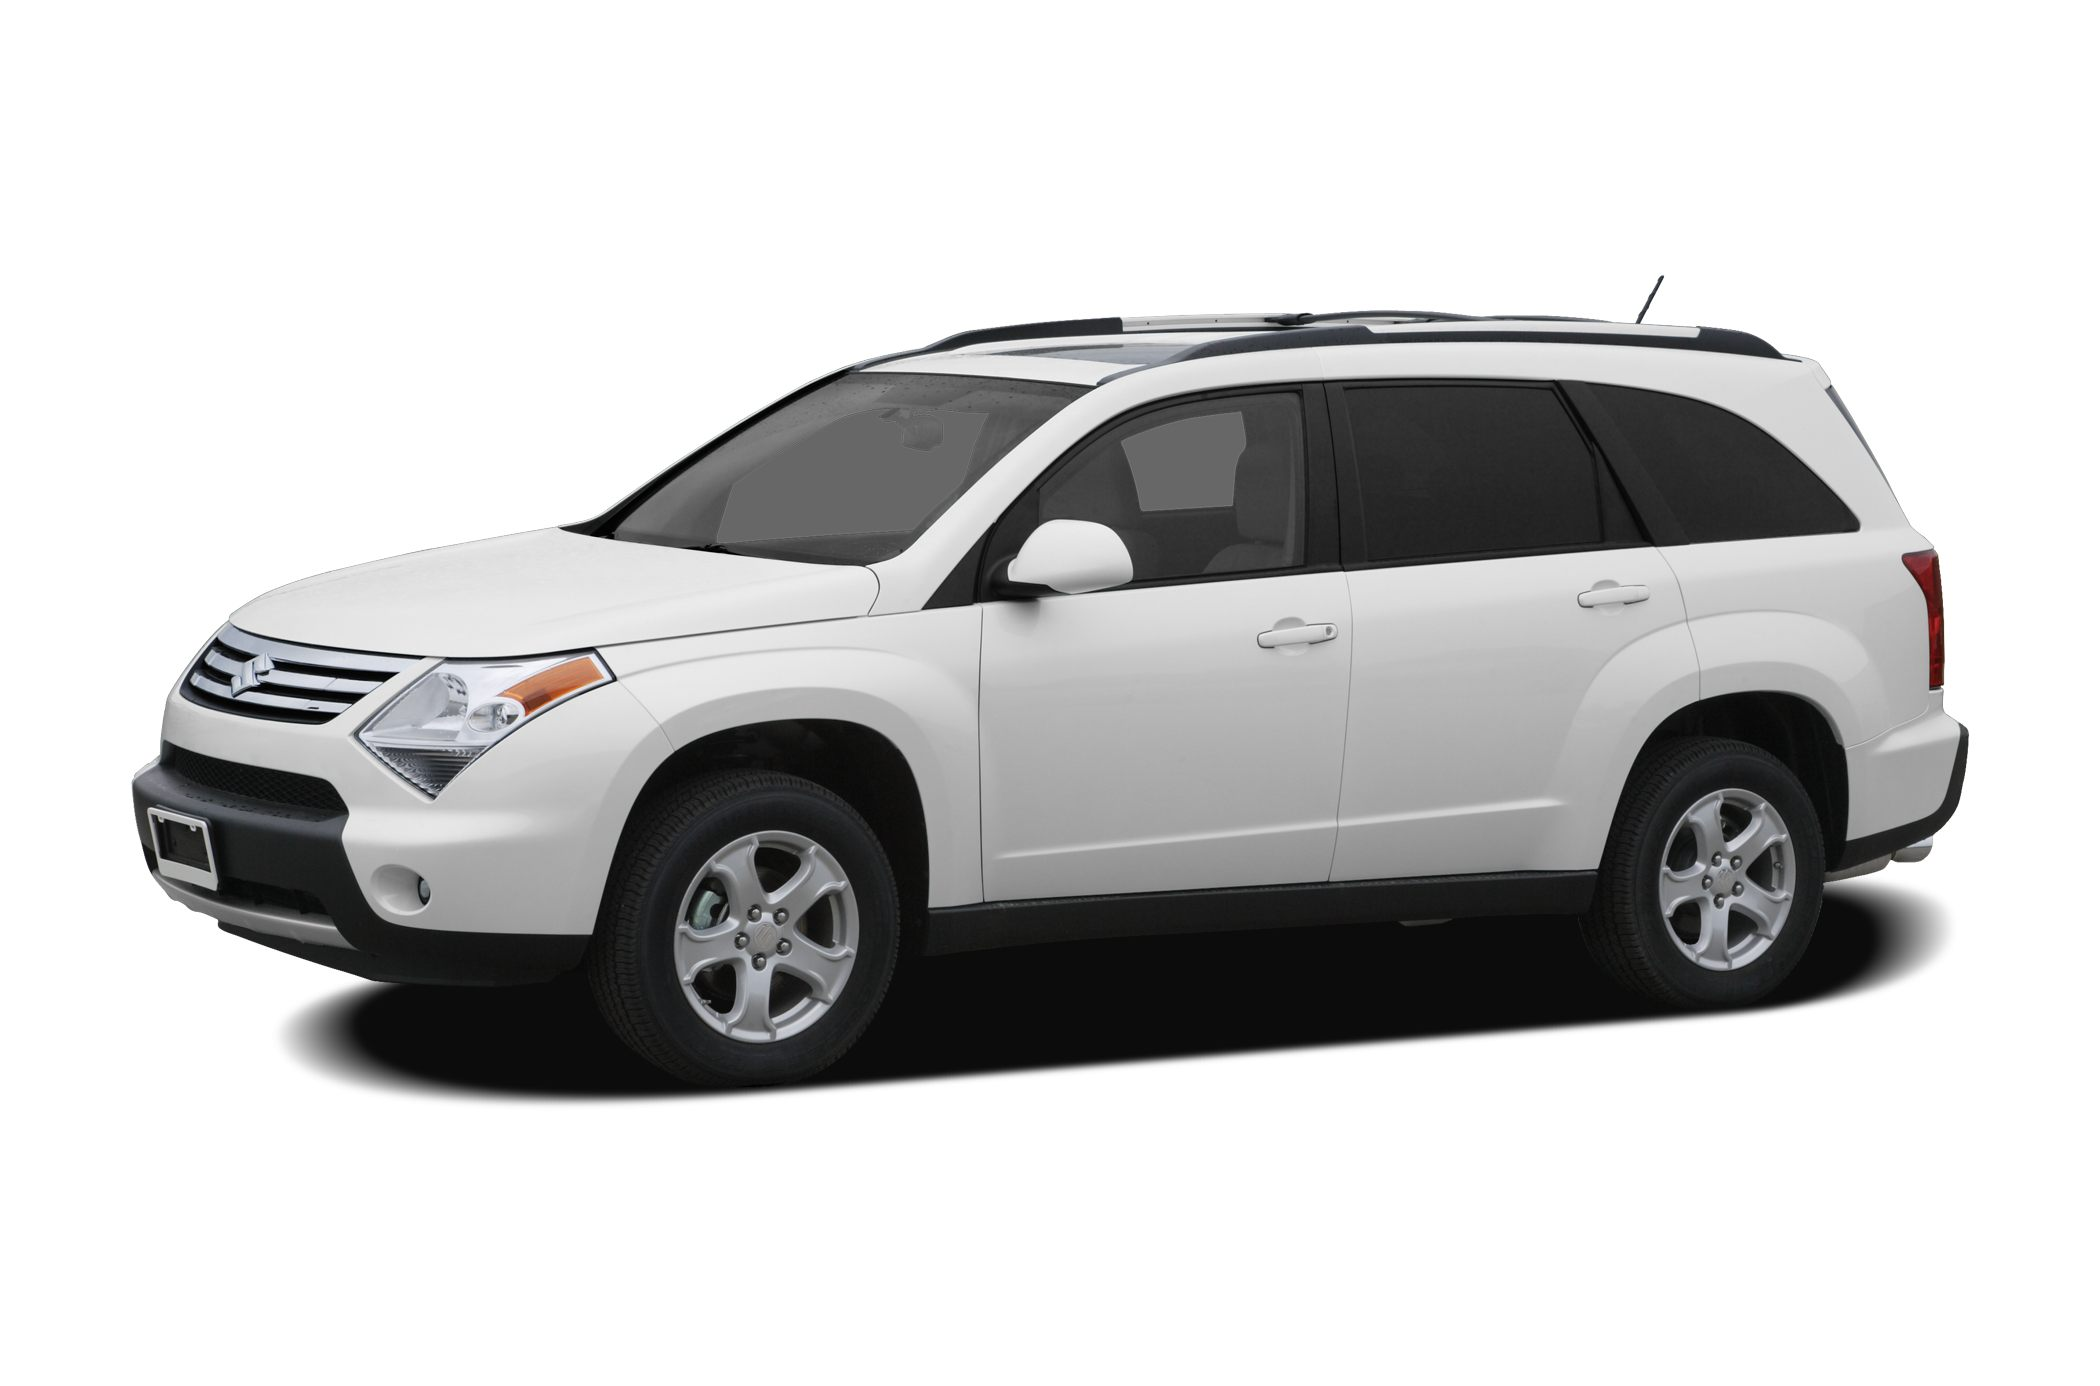 2008 Suzuki XL7 Luxury SUV for sale in Columbia for $9,995 with 0 miles